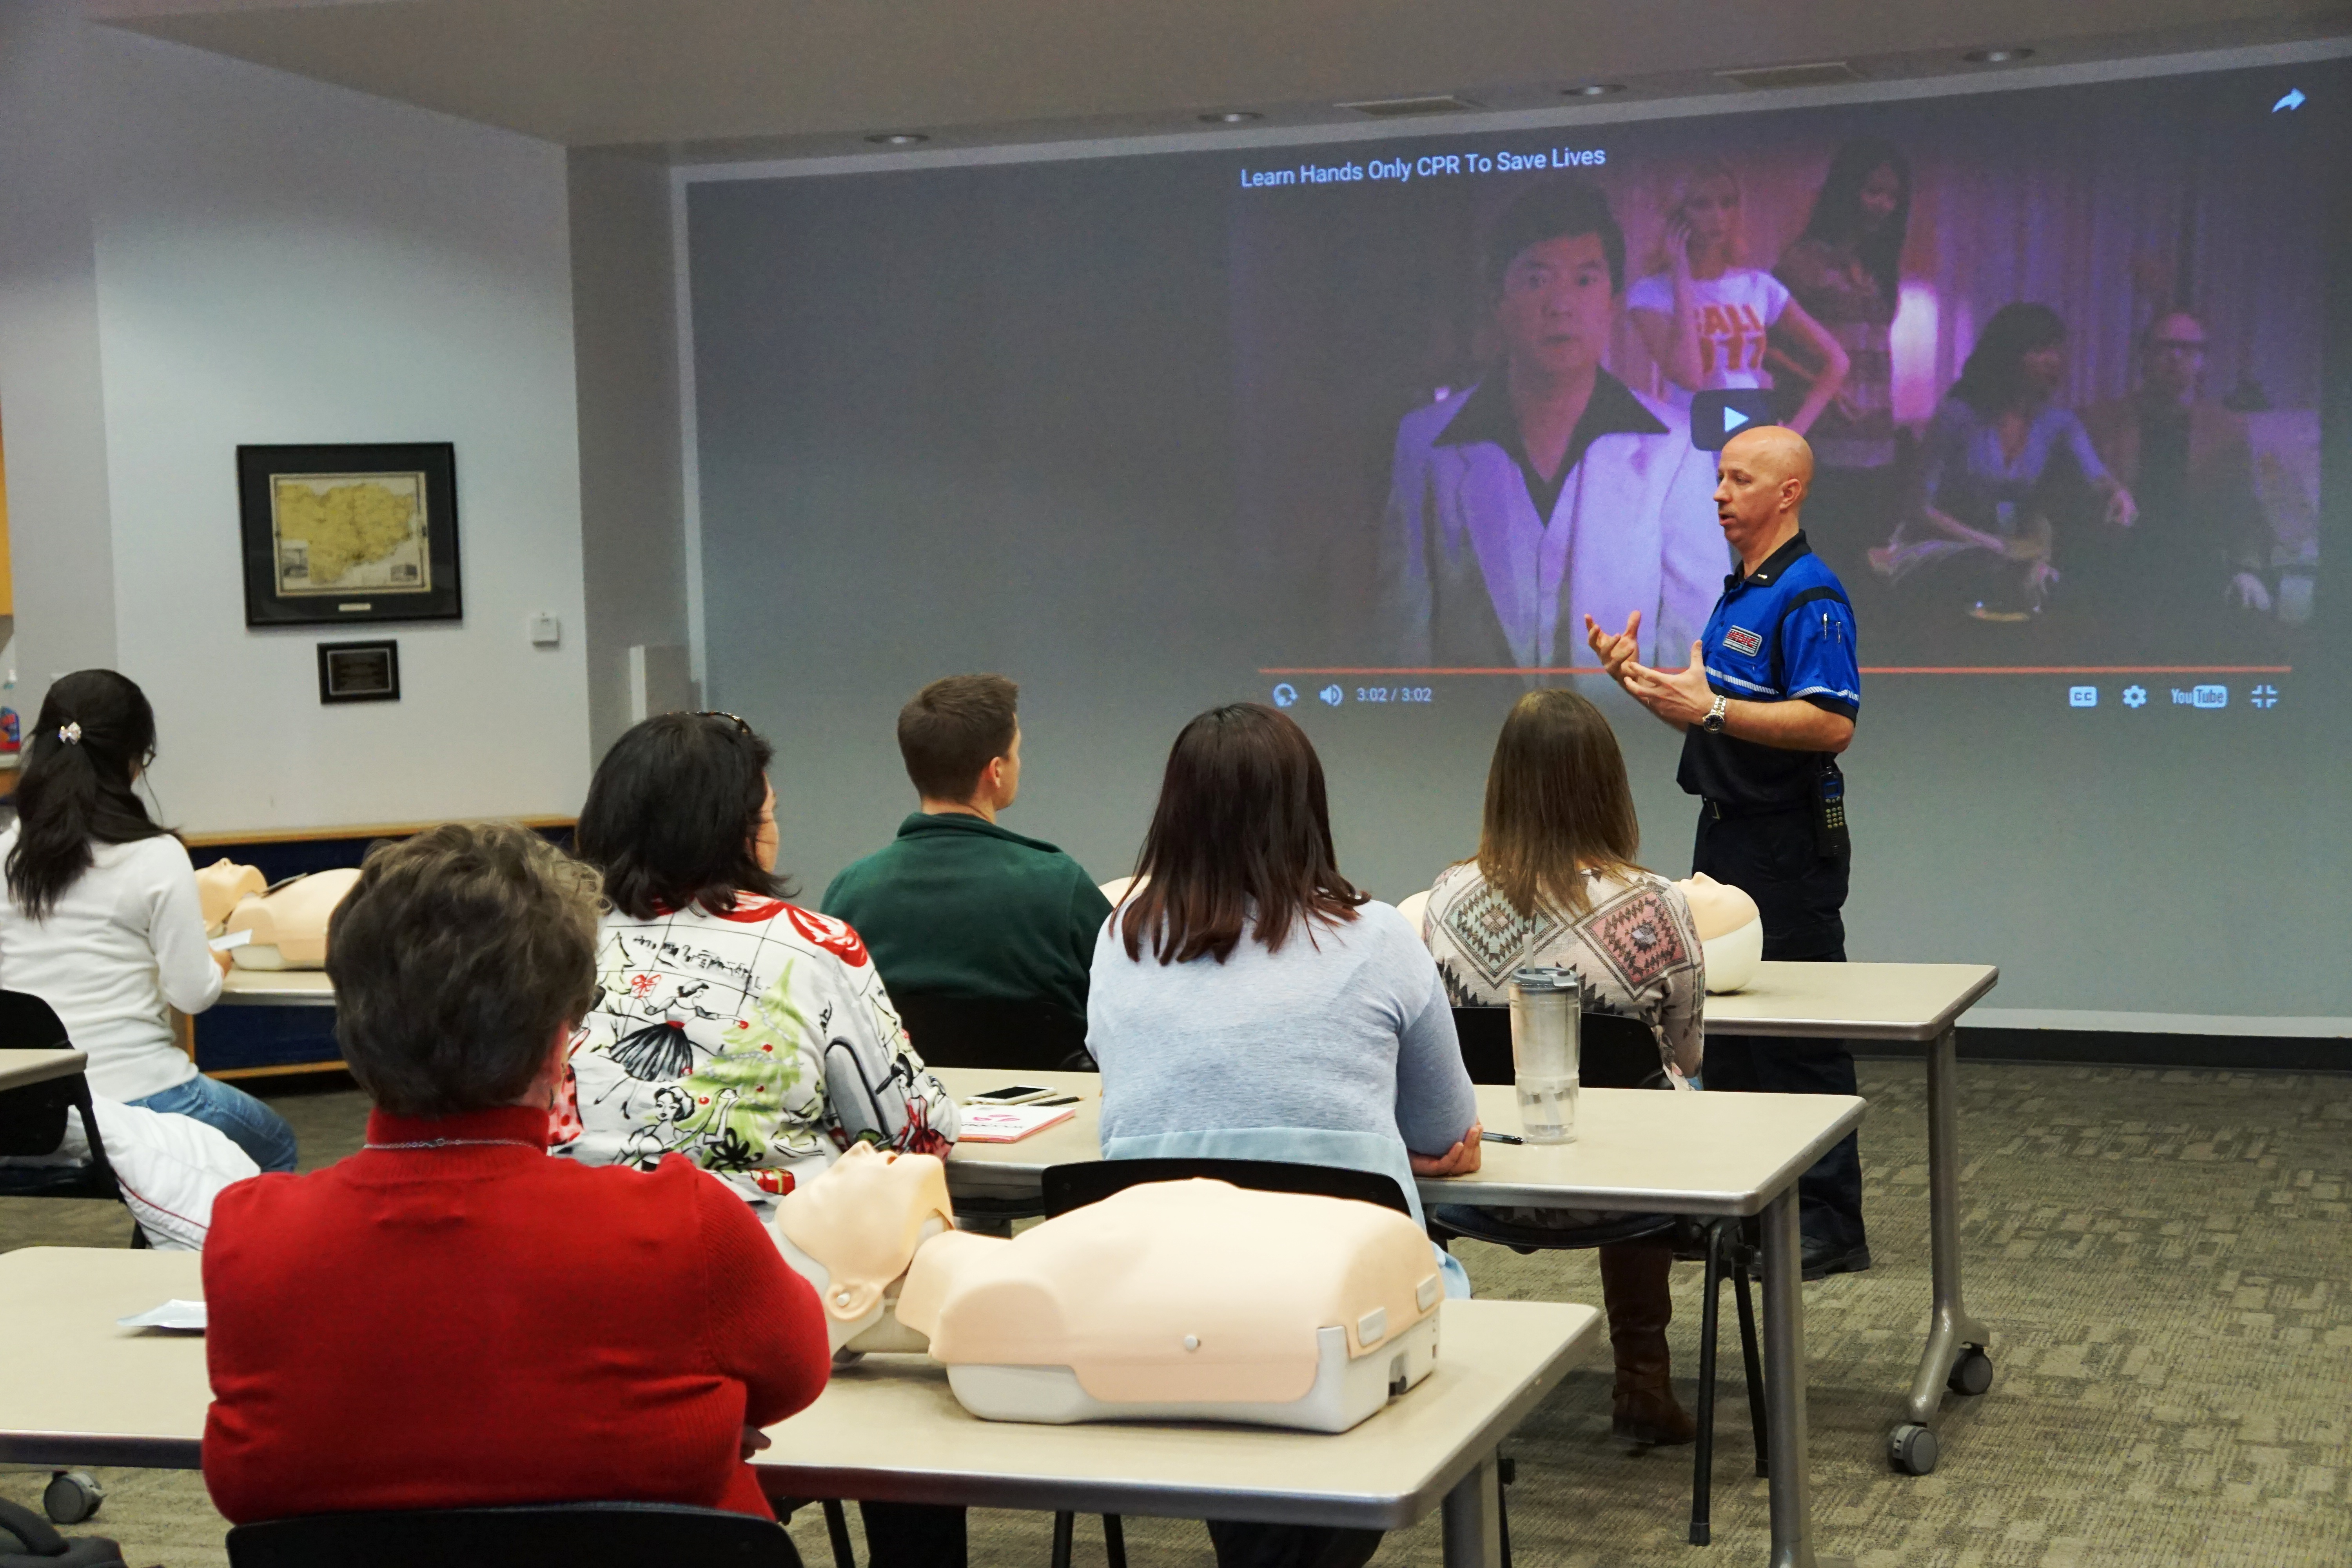 Hands Only Cpr Training Scott County Iowa